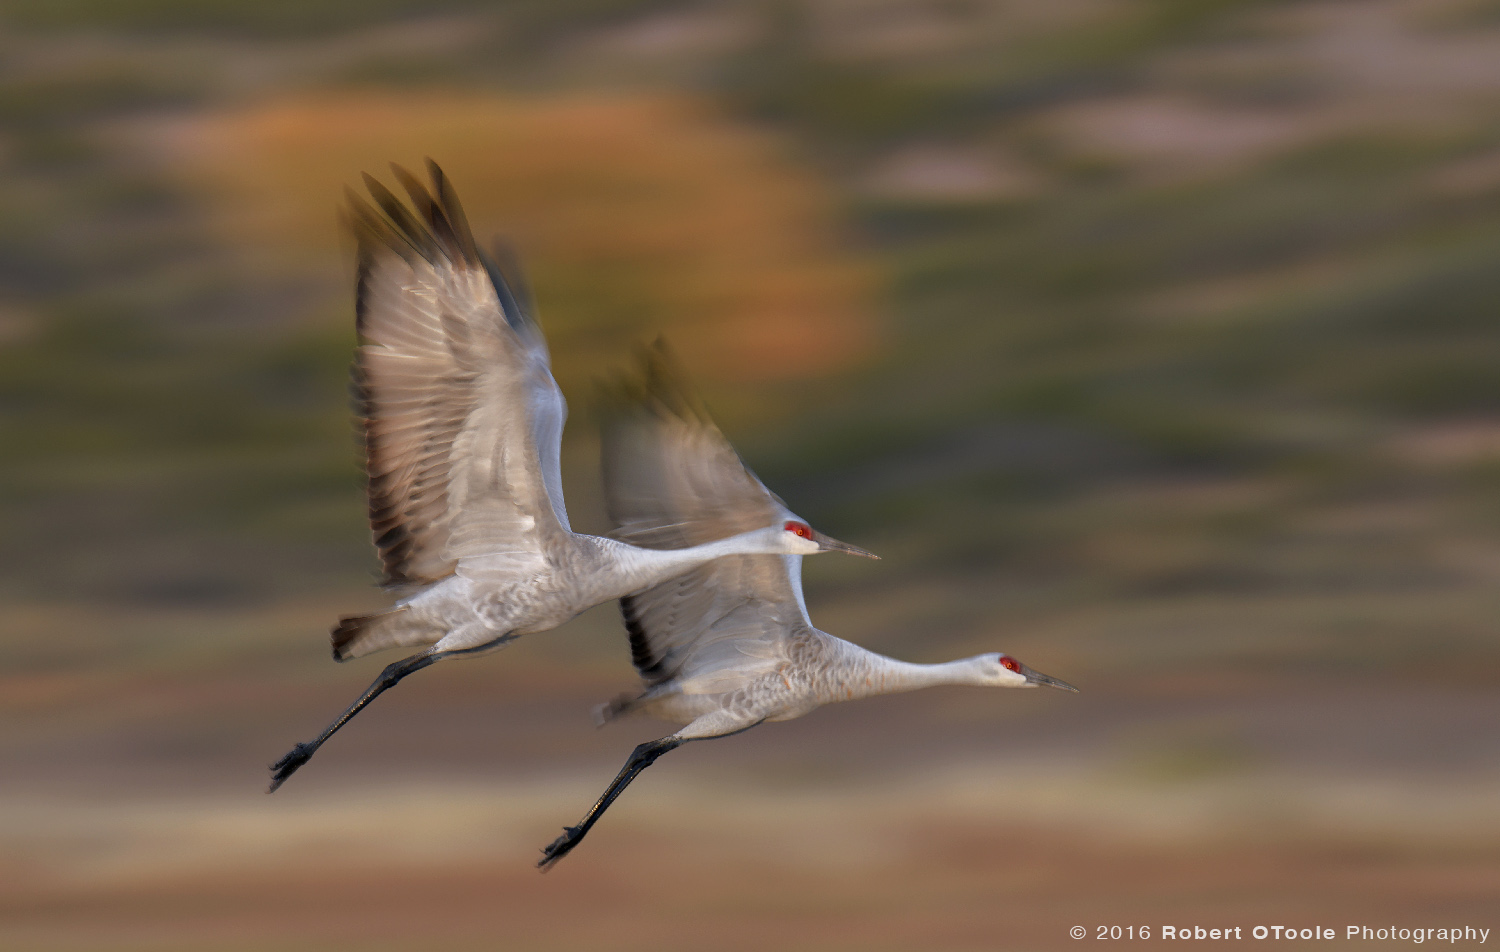 Pair of Sandhill Cranes Flying against Cottonwood at 1/25th s